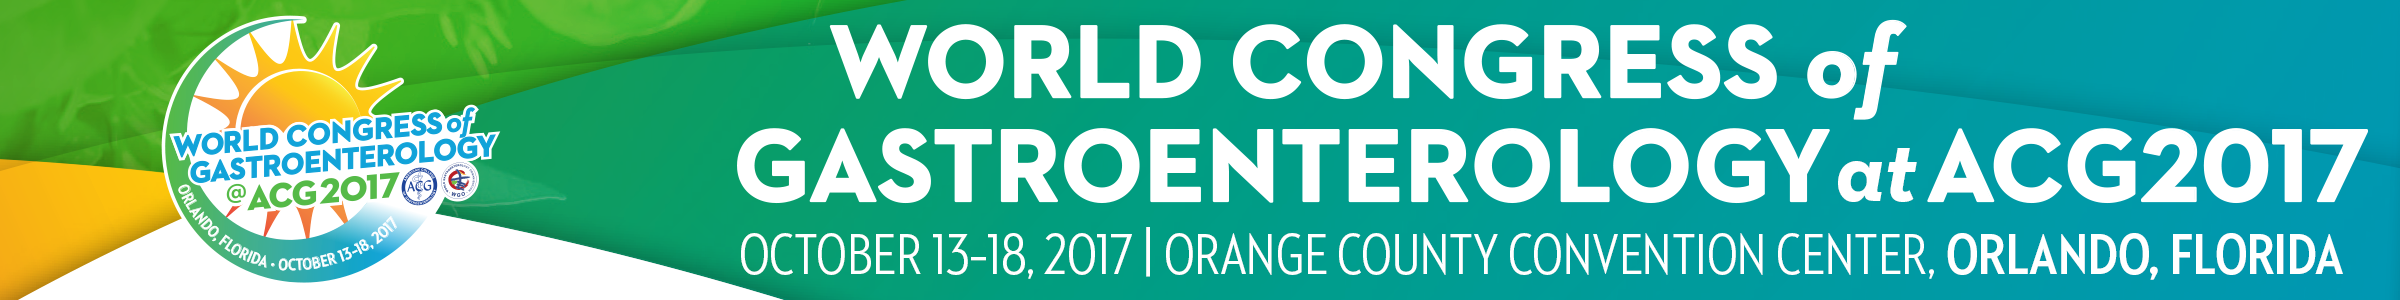 World Congress of Gastroenterology at ACG2017